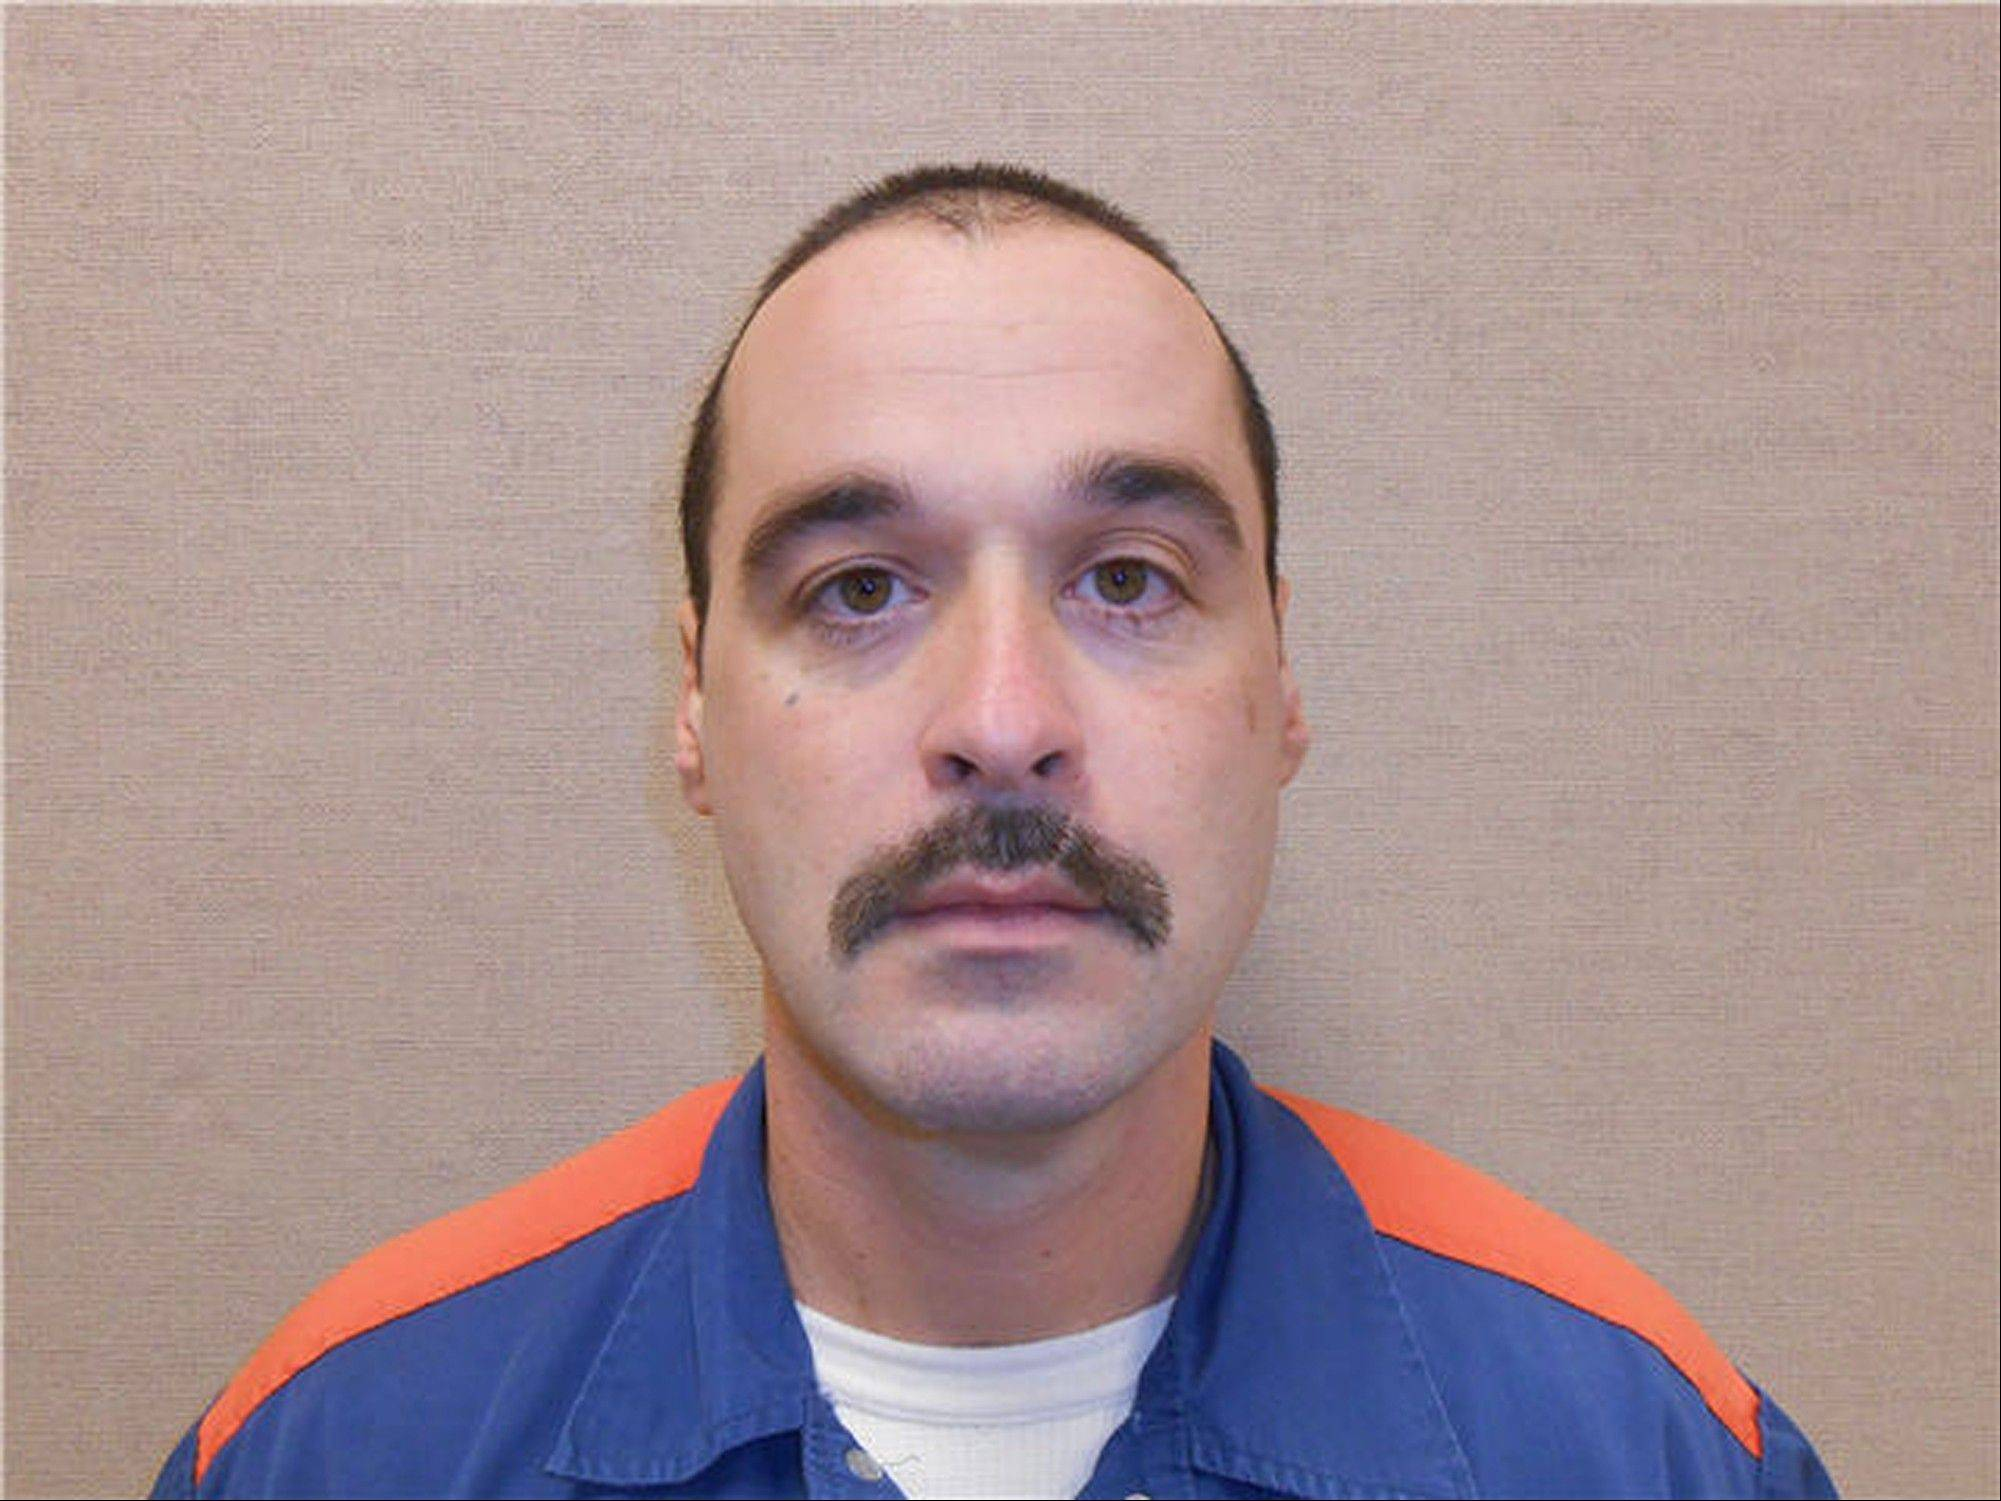 Michael David Elliot, 40, who is serving life behind bars for murder in four 1993 deaths in Michigan, is at large after he escaped from a Michigan prison and abducted a woman who fled his grips when he stopped for gas in Indiana, authorities said Monday.